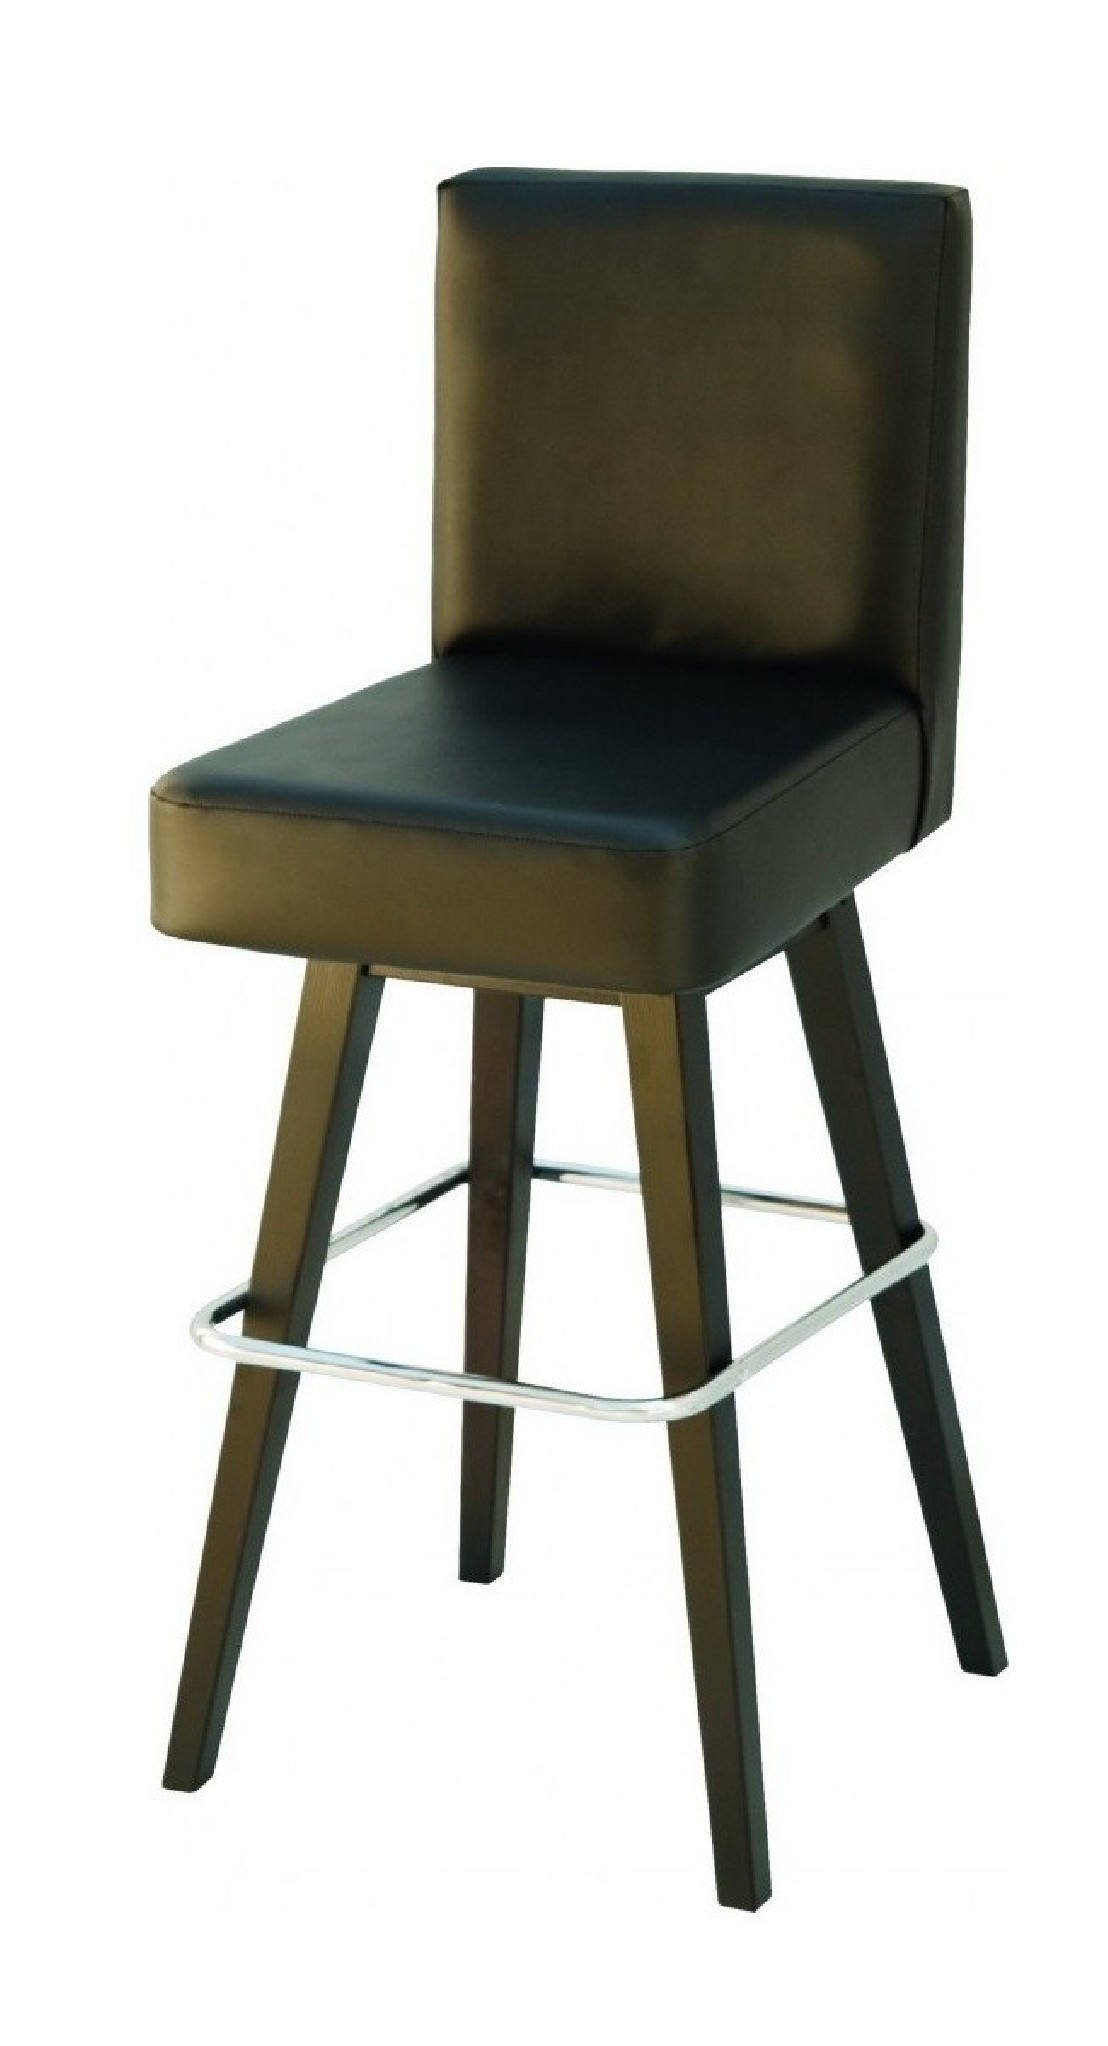 Lot De 2 Tabouret De Bar Tabouret De Bar Casinoroyal En Cuir Lot De 2